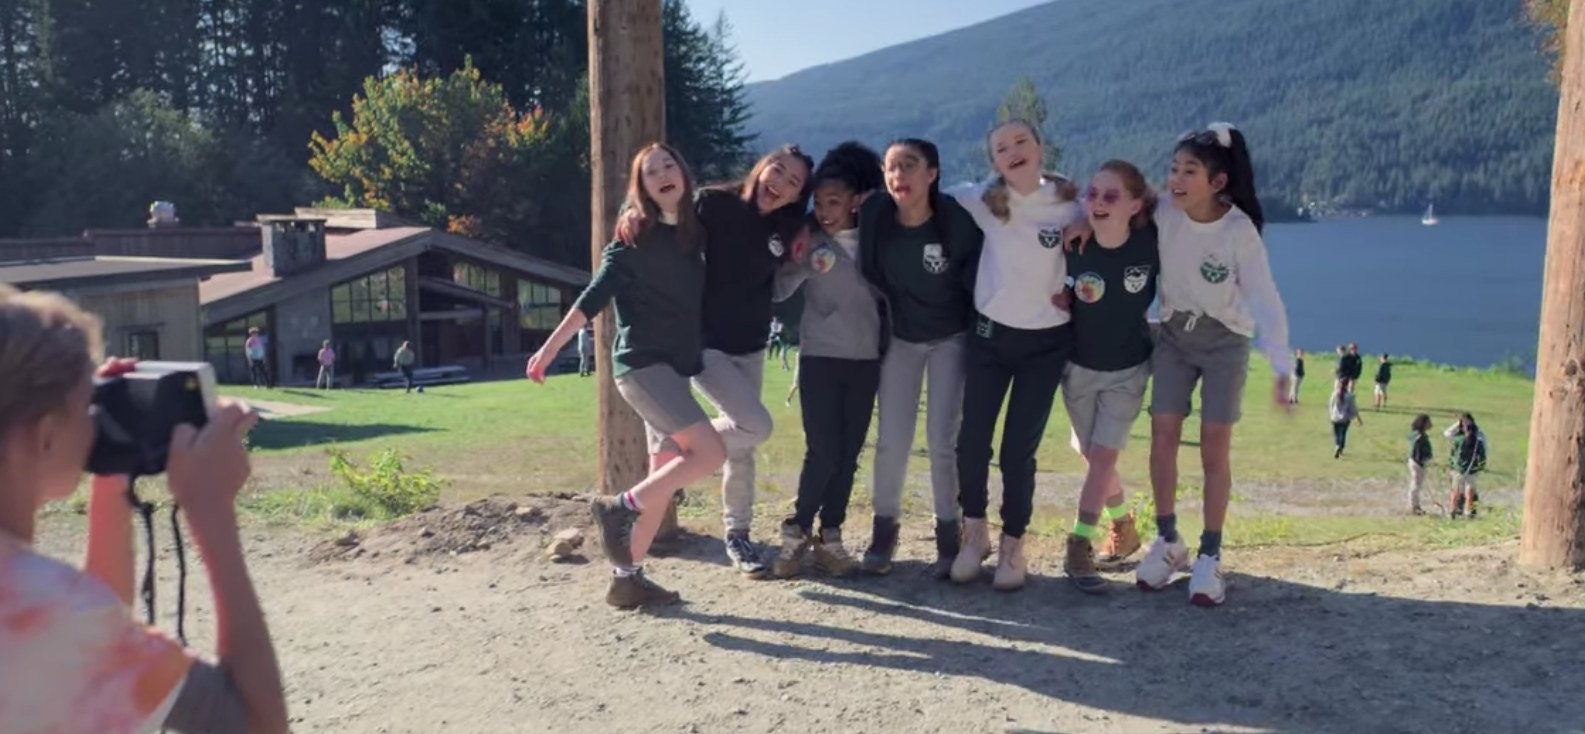 The Baby-Sitters club poses for a photo at Camp Moosehead.